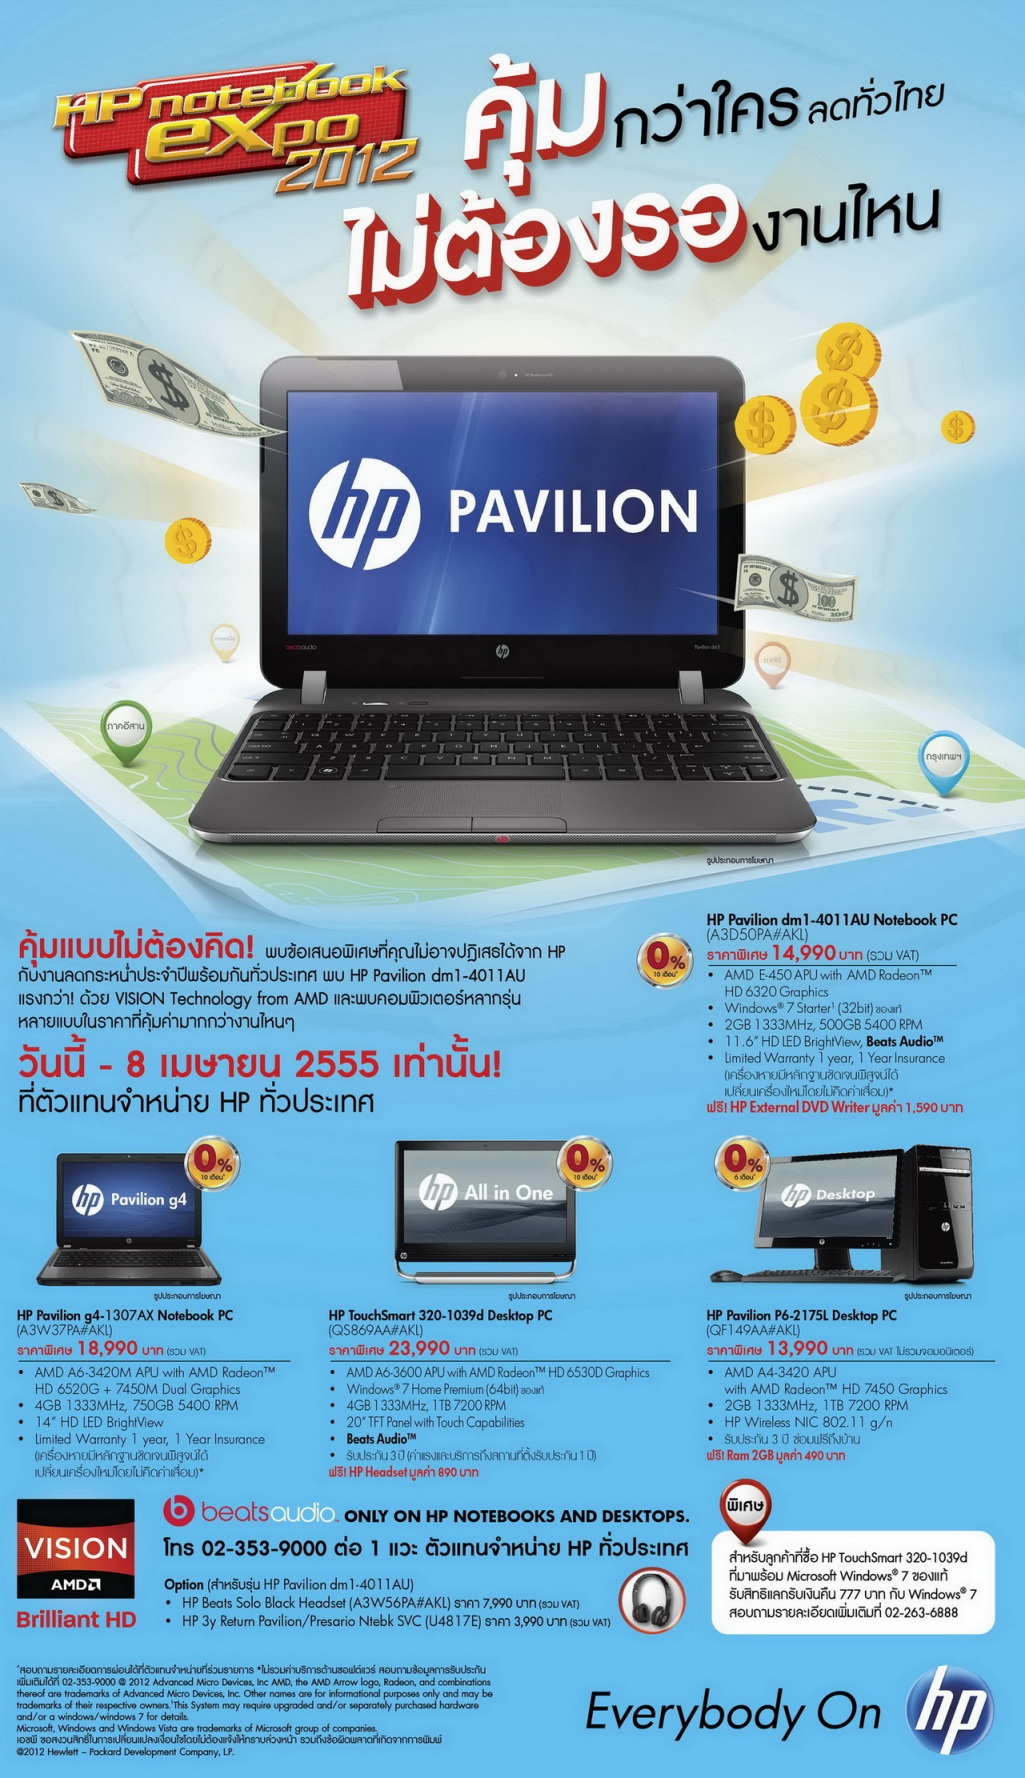 HP Notebook Expo 2012